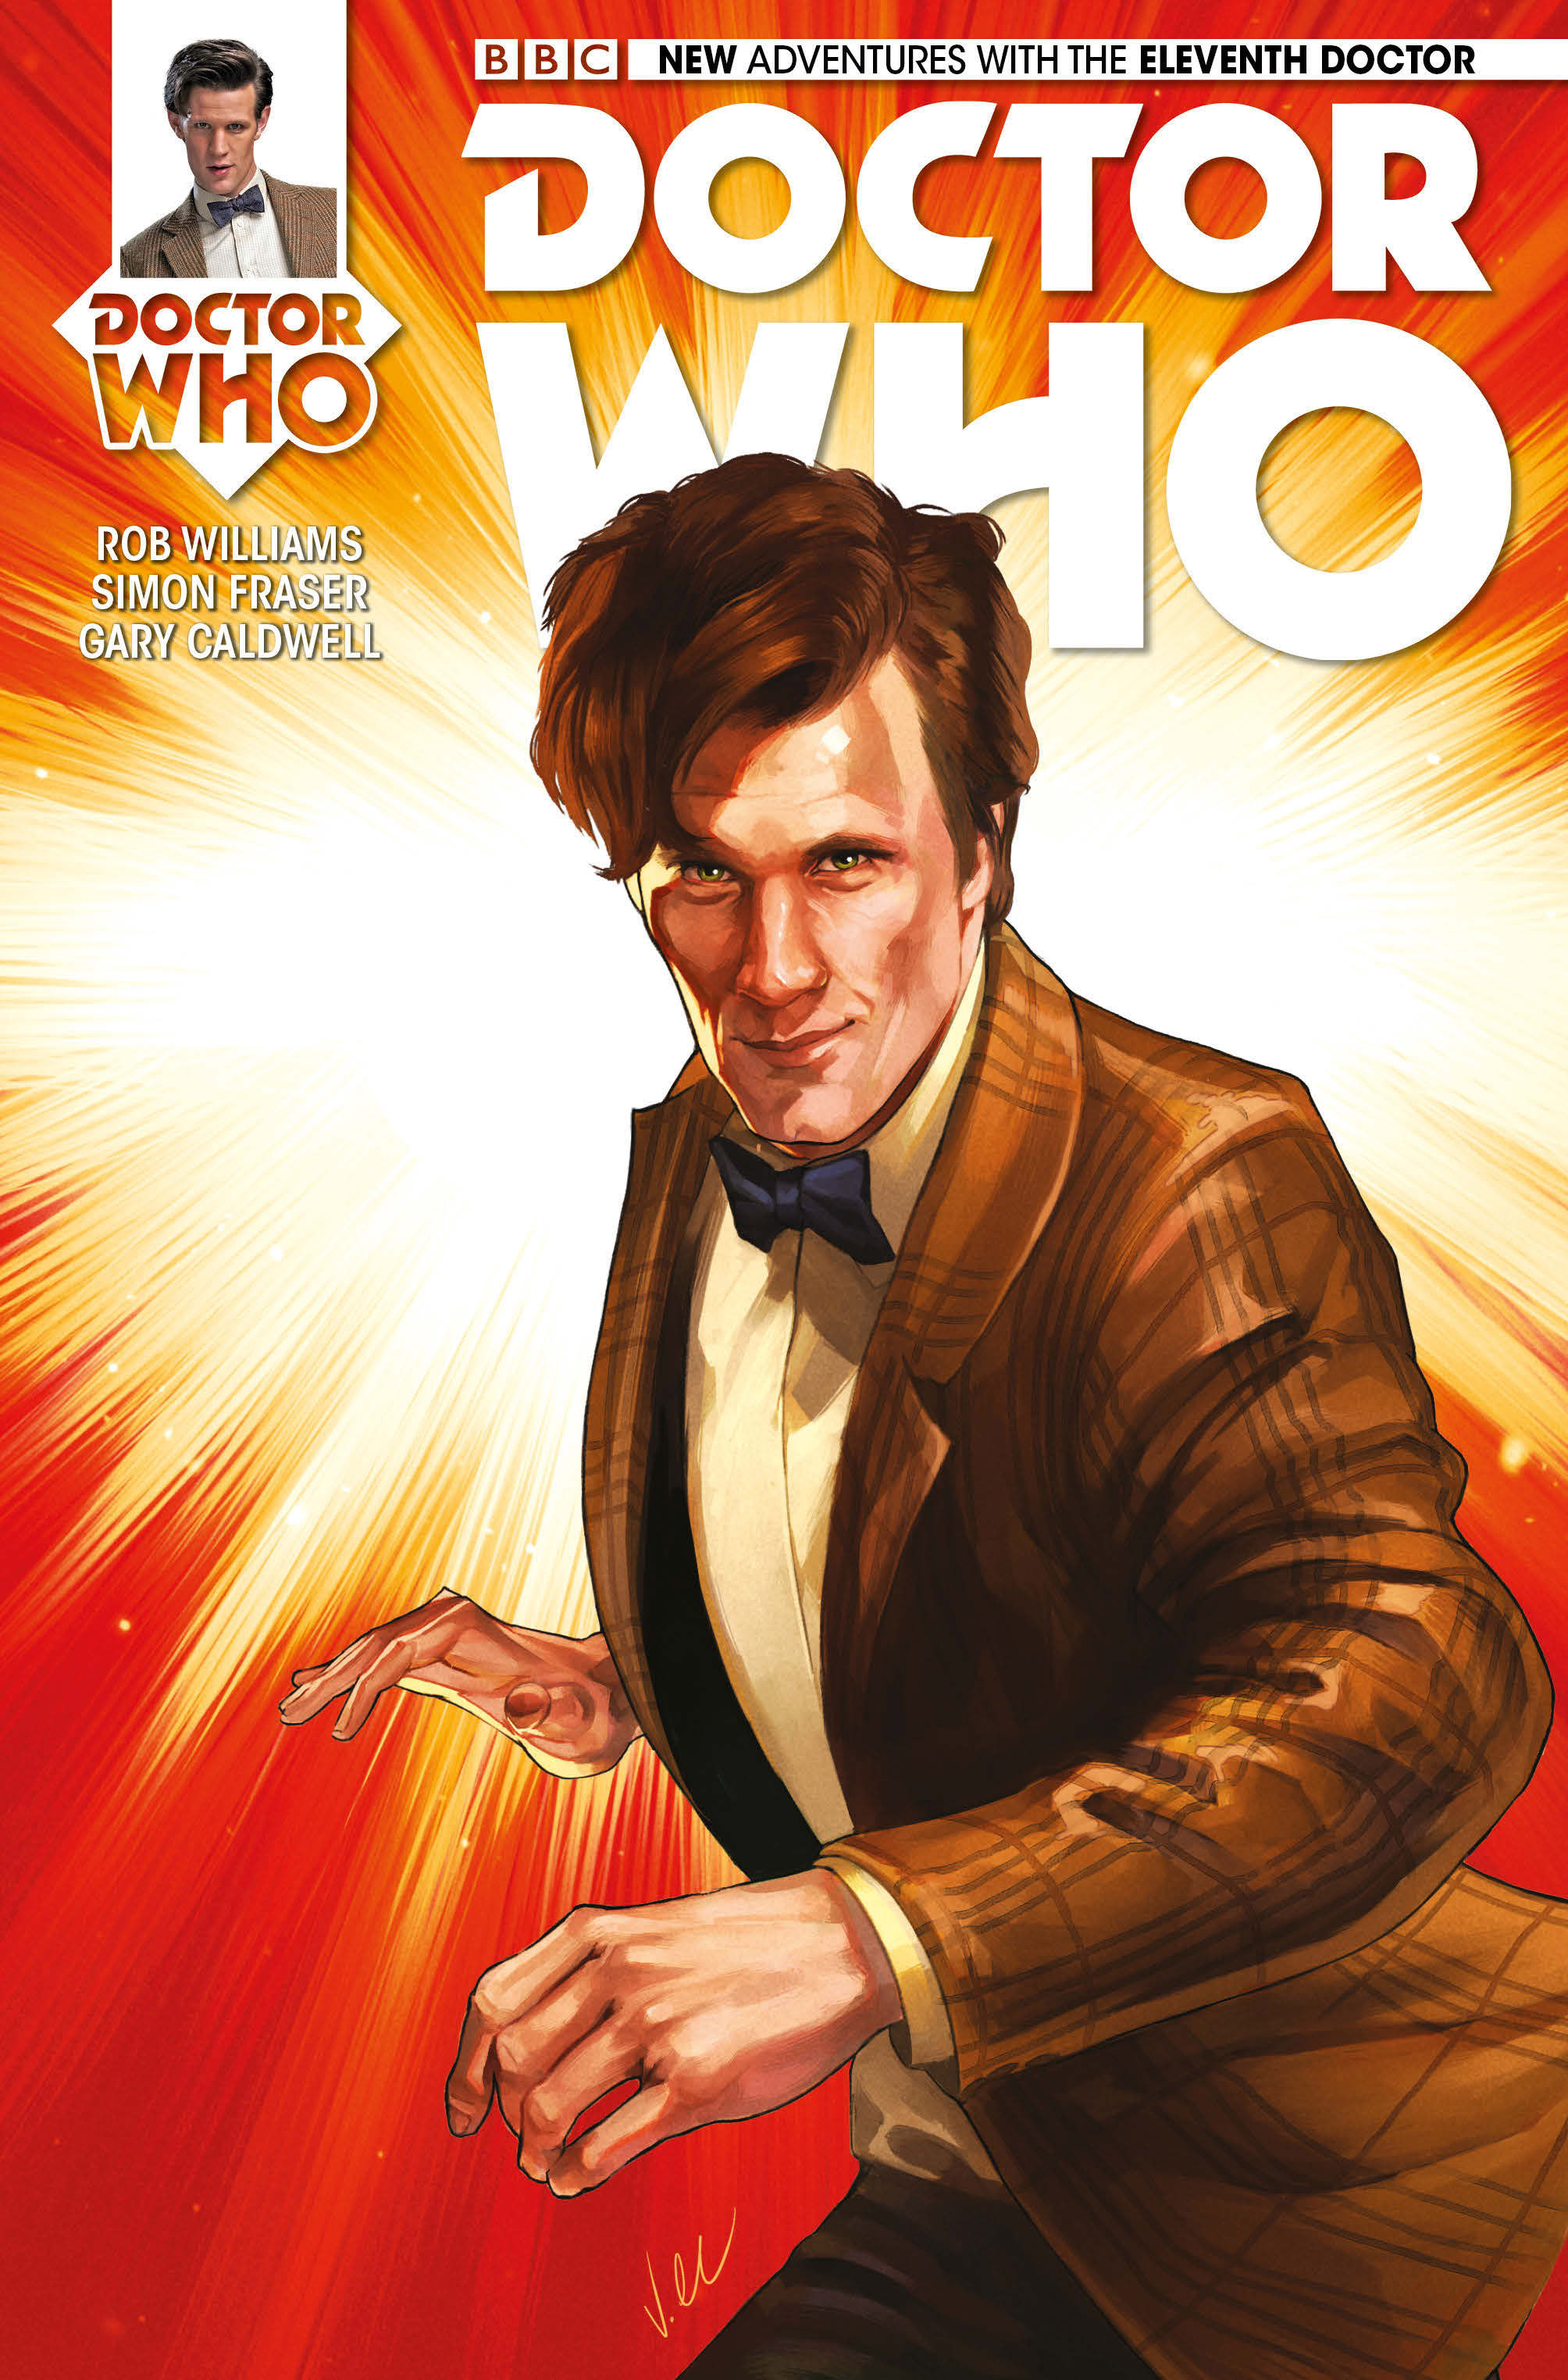 Doctor Who: The Eleventh Doctor 3 Page 1